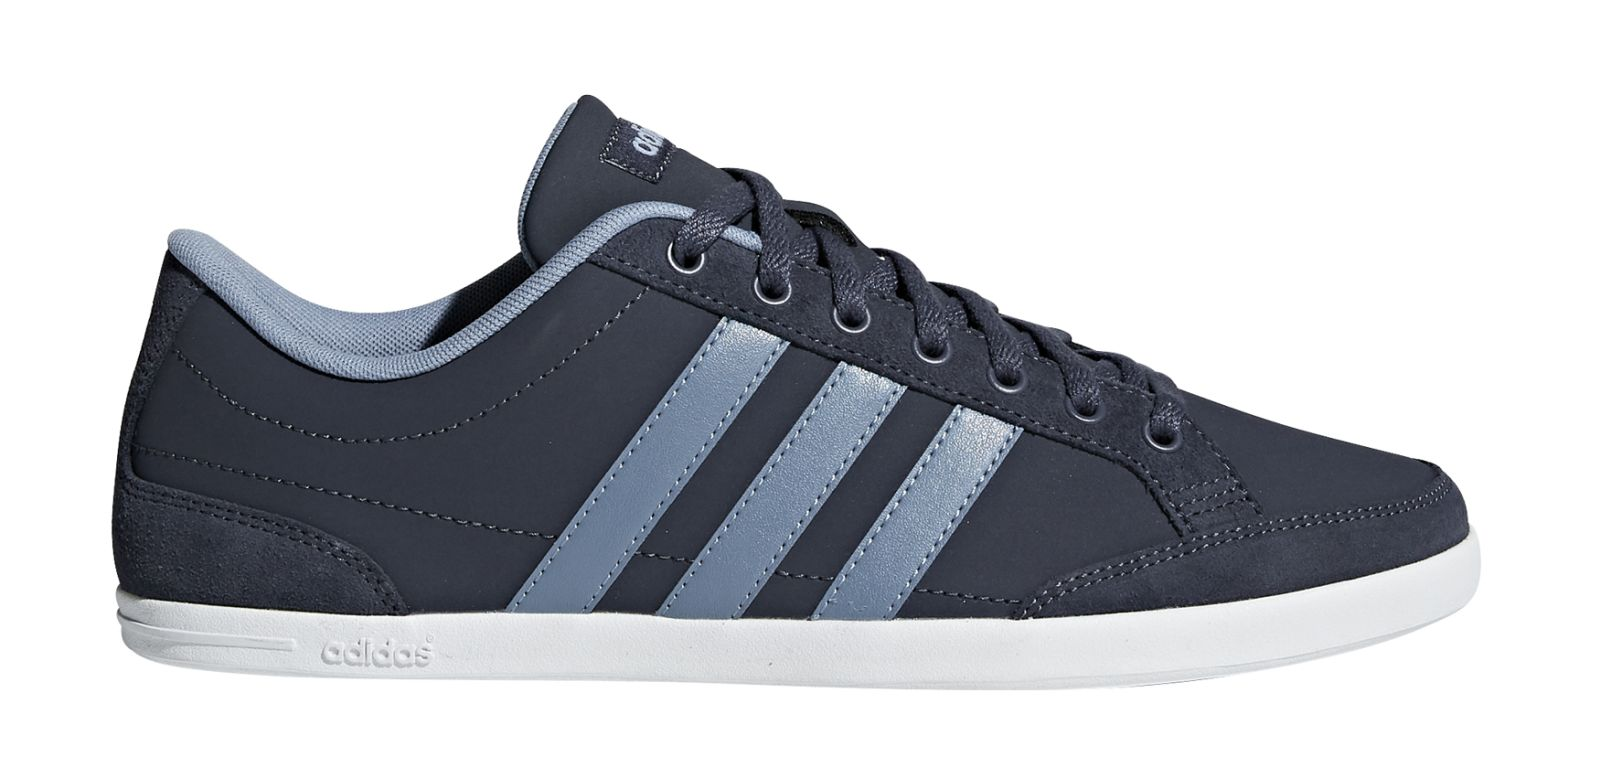 adidas core herren freizeit fitness schuh sneaker caflaire blau grau ebay. Black Bedroom Furniture Sets. Home Design Ideas